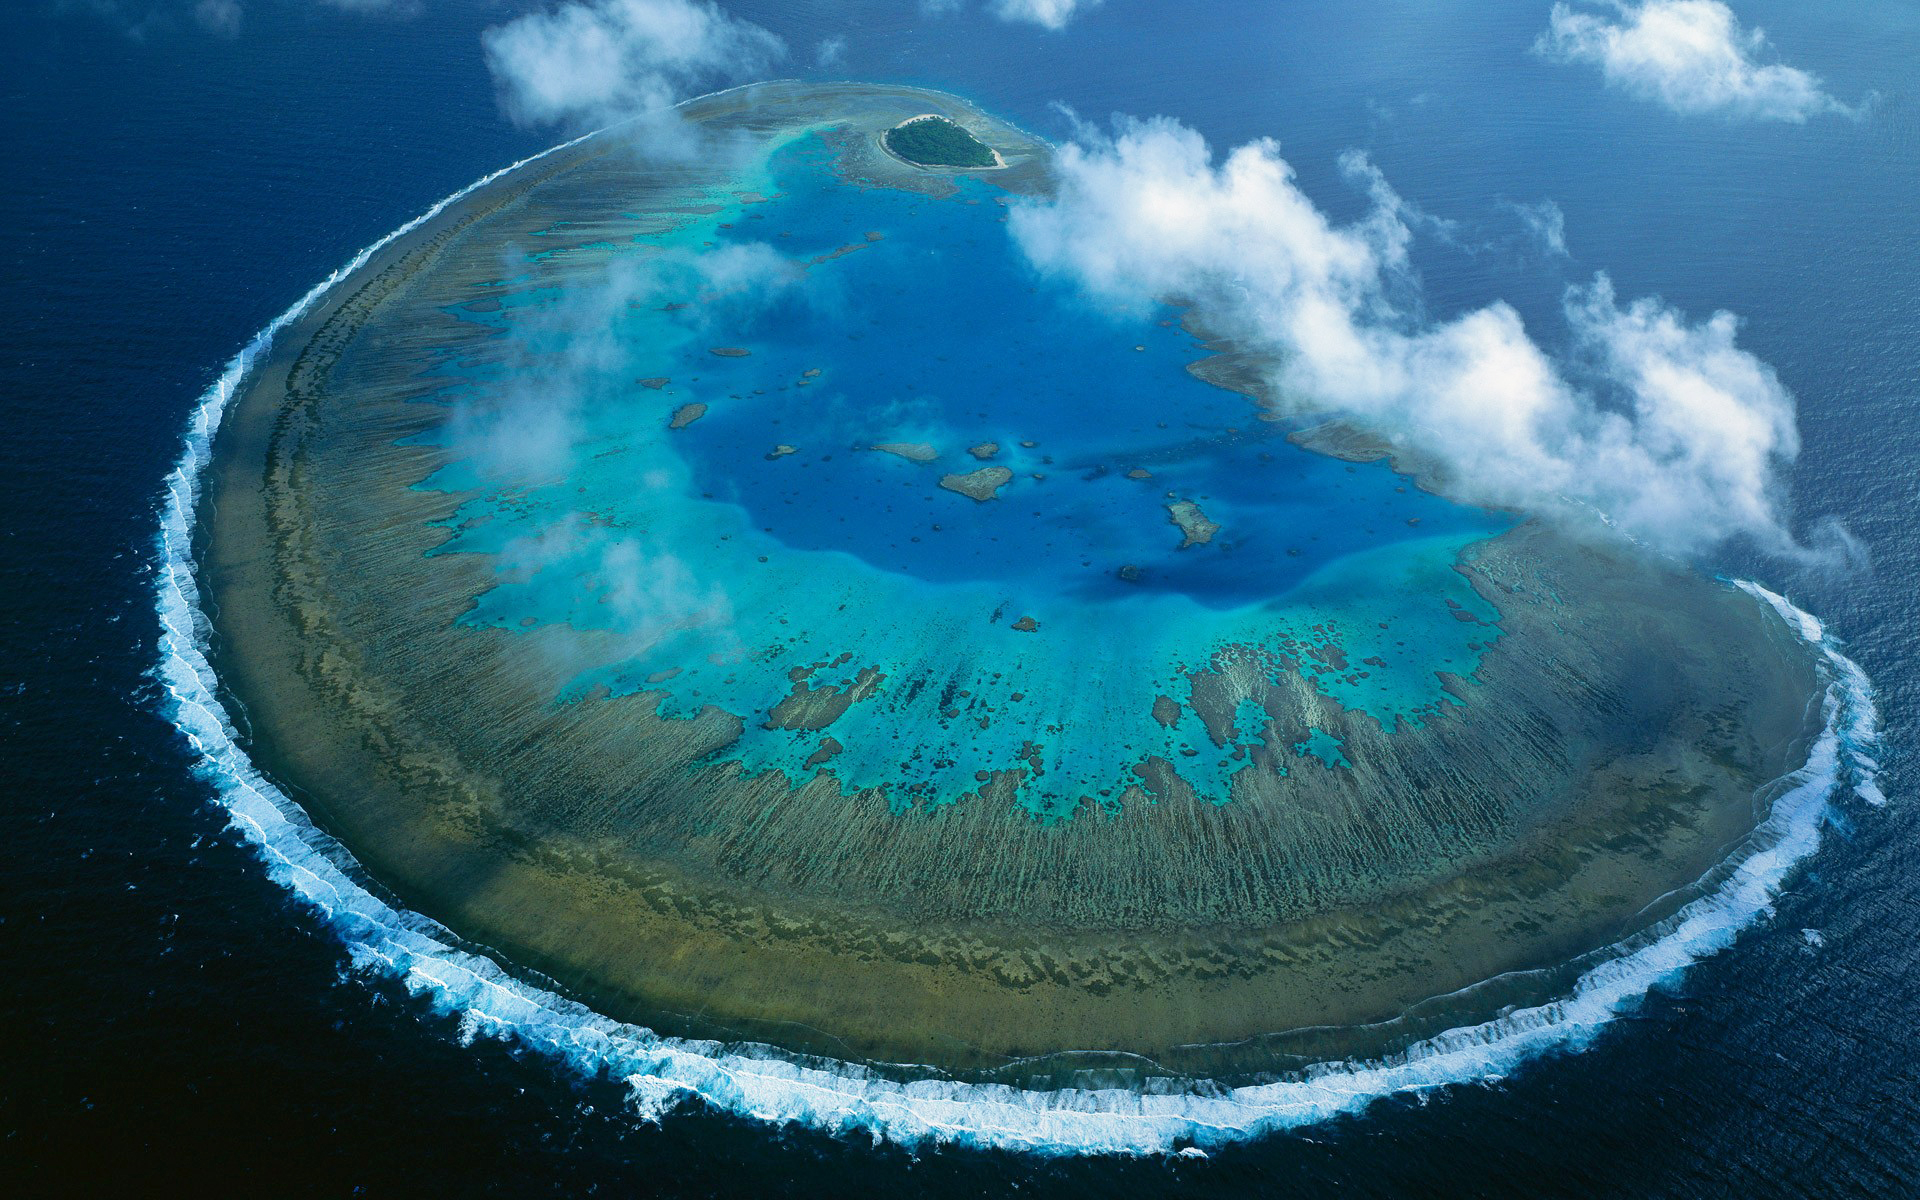 Fraser Island Great Barrier Reef 5 Day Package Tour